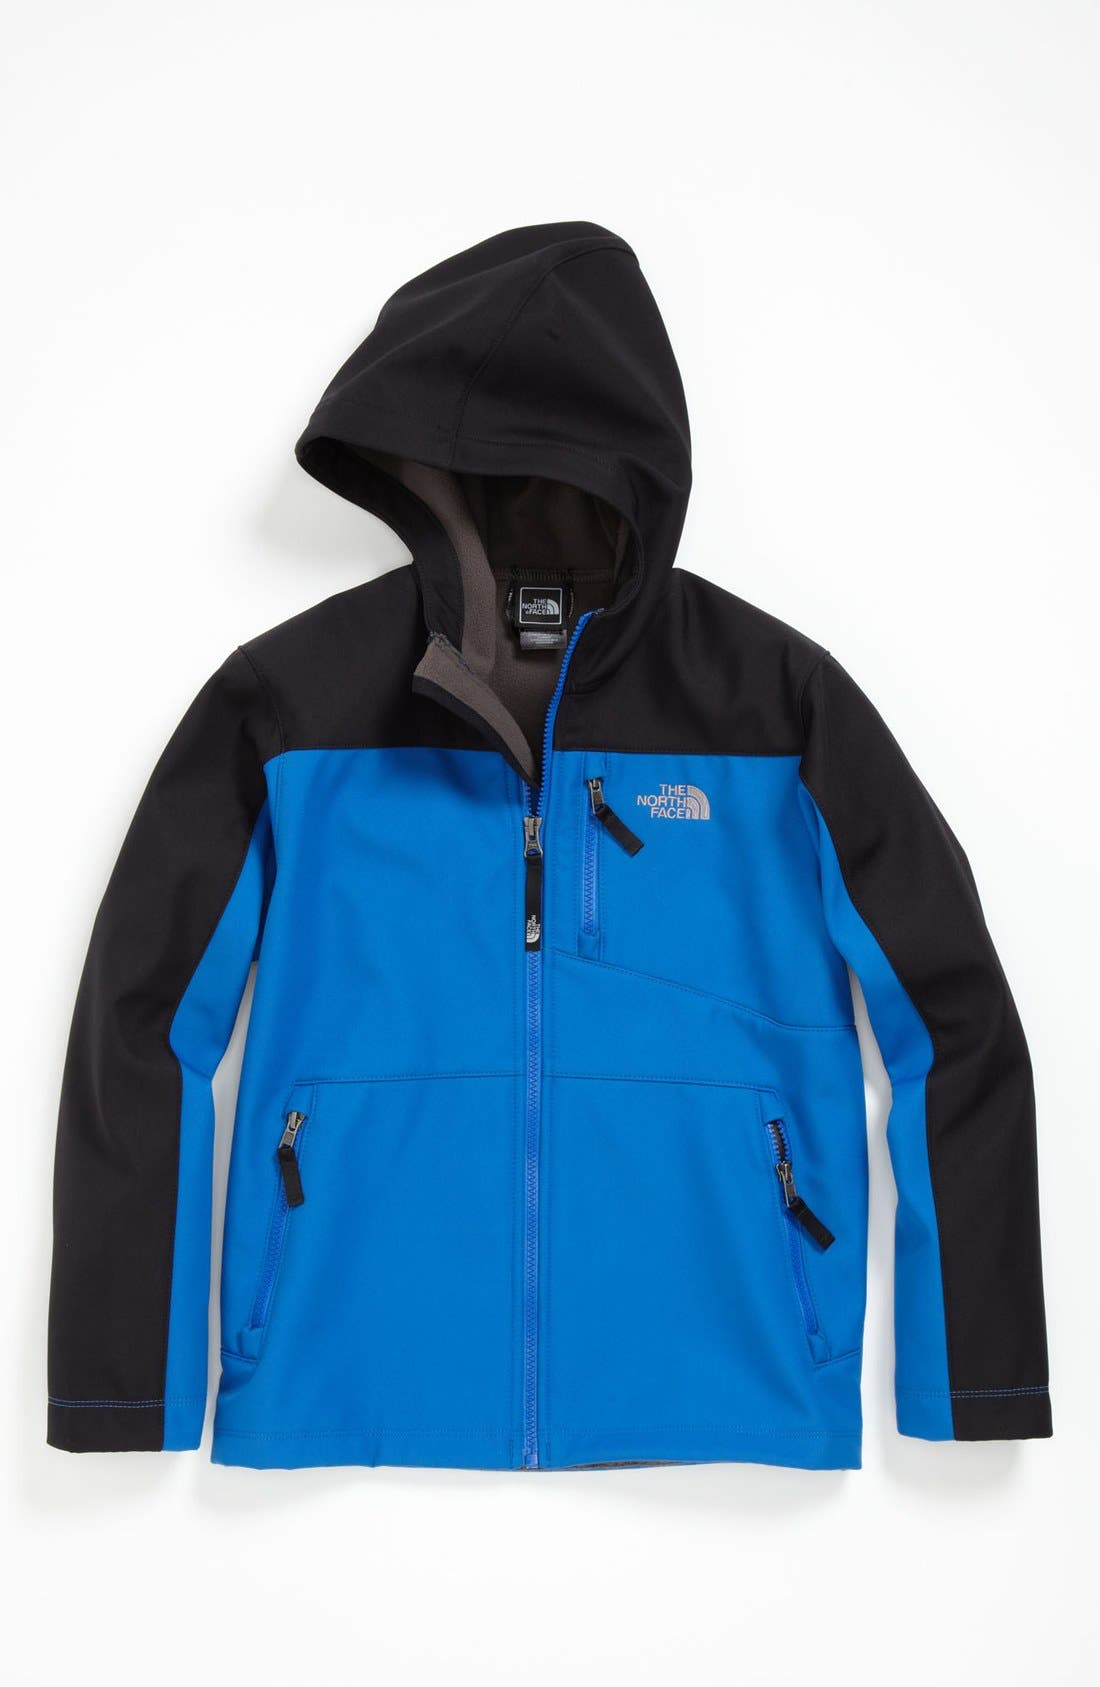 Alternate Image 1 Selected - The North Face 'Apex Bionic' Hooded Jacket (Little Boys & Big Boys) (Nordstrom Exclusive)